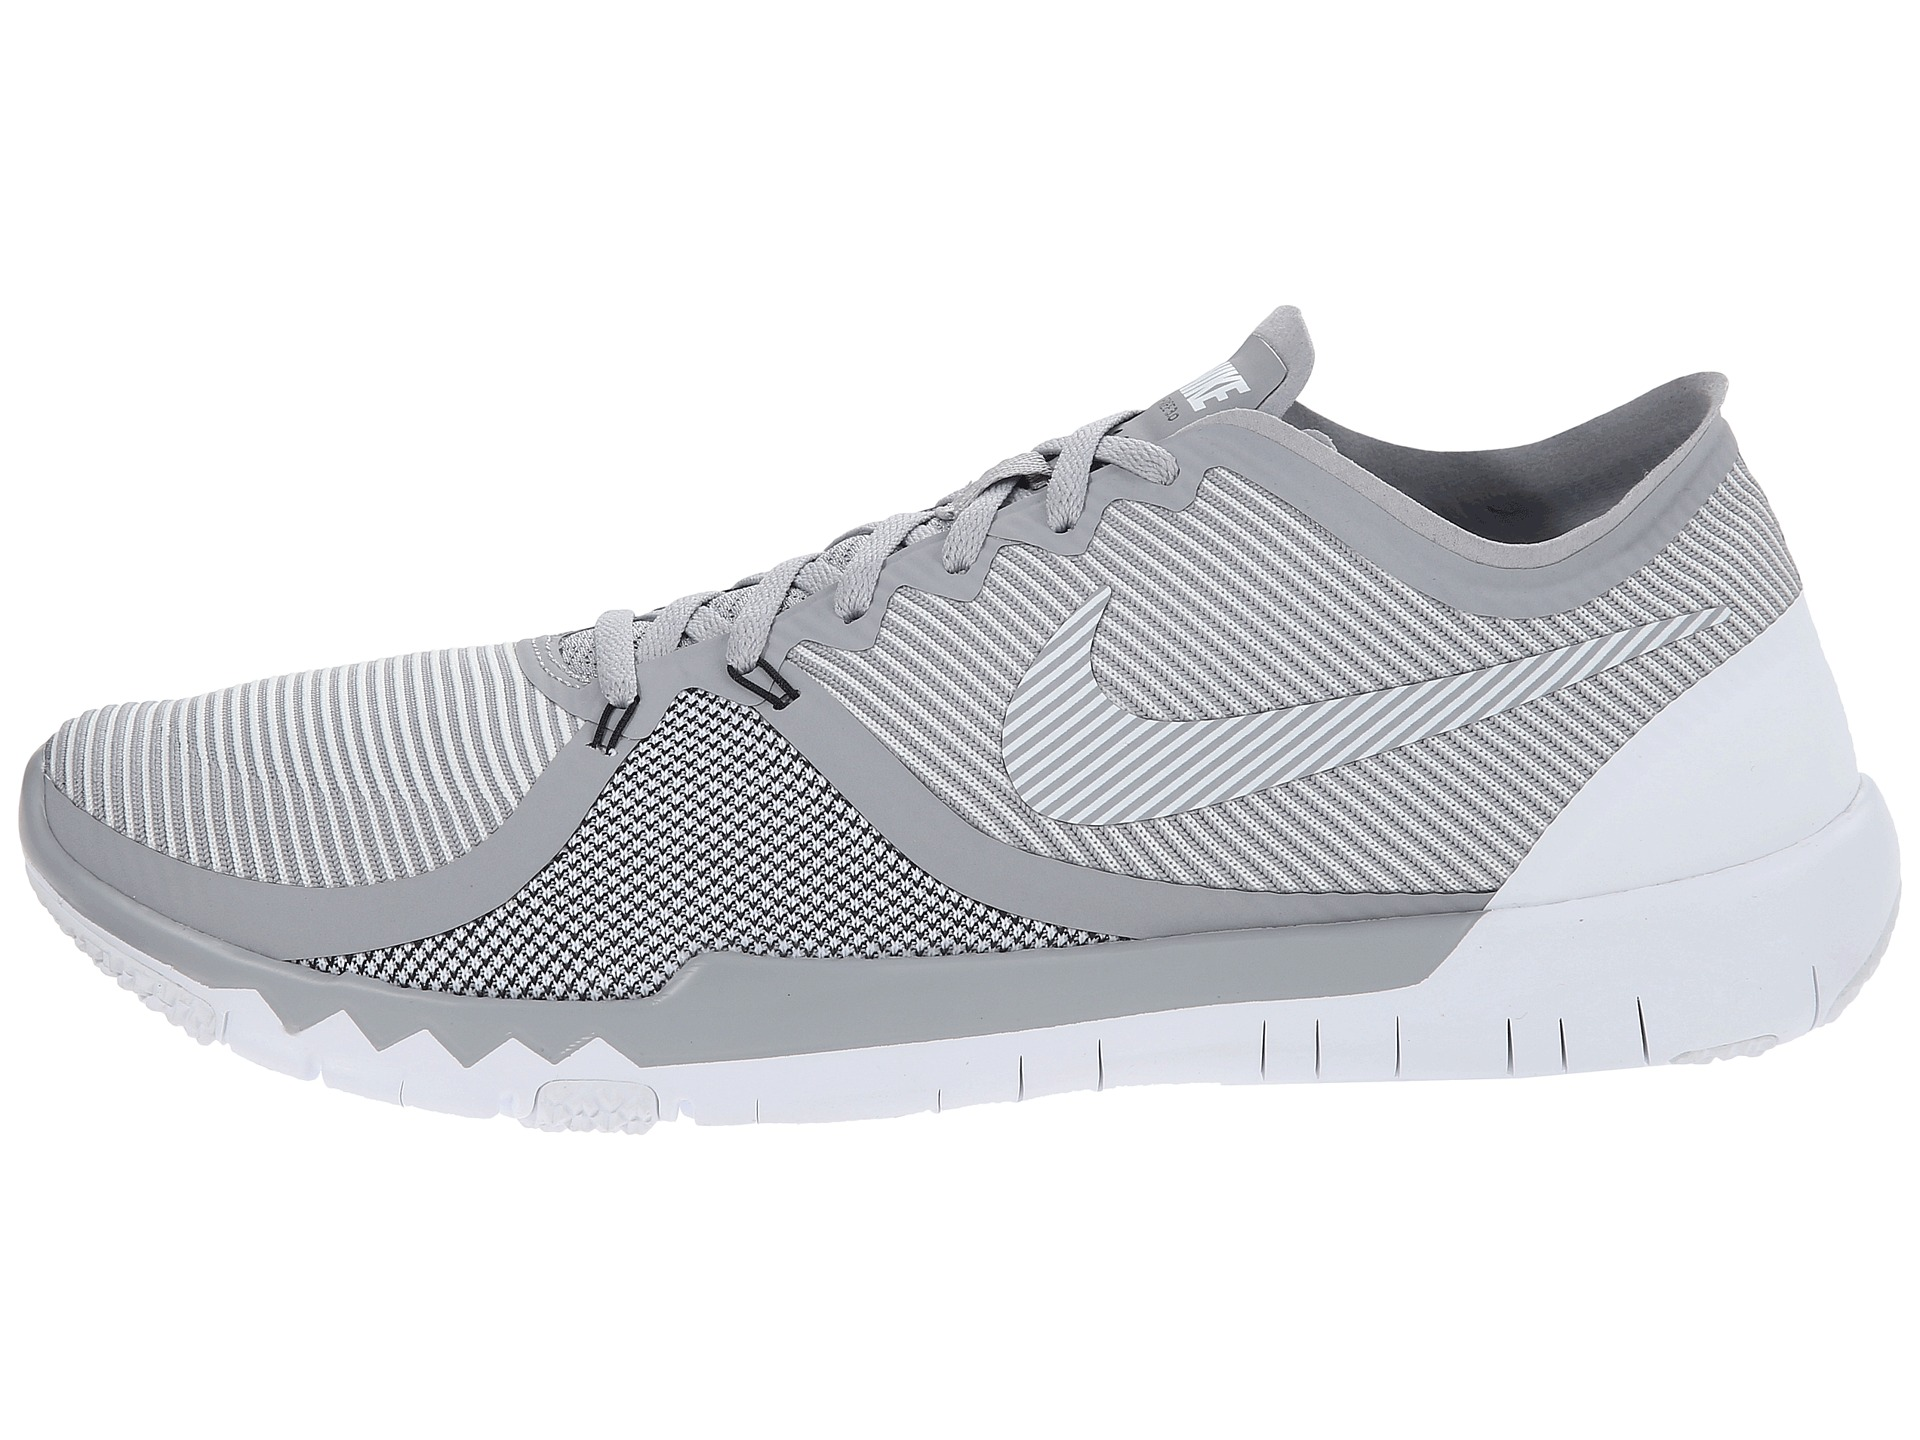 Nike Trainer Shoes Wide Fitting